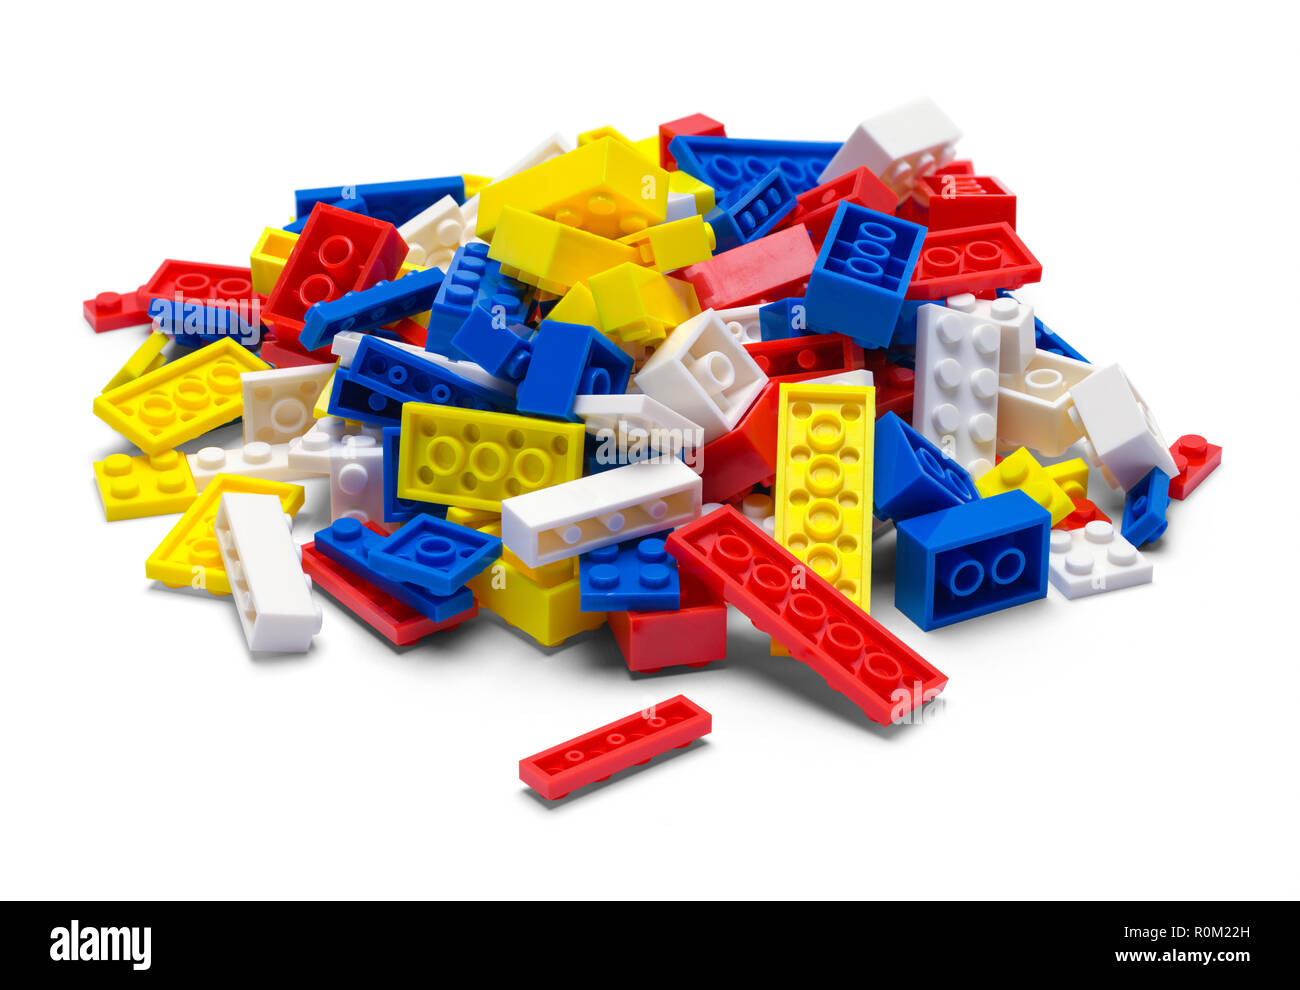 Small Pile of Plastic Toy Blocks Isolated on White. - Stock Image